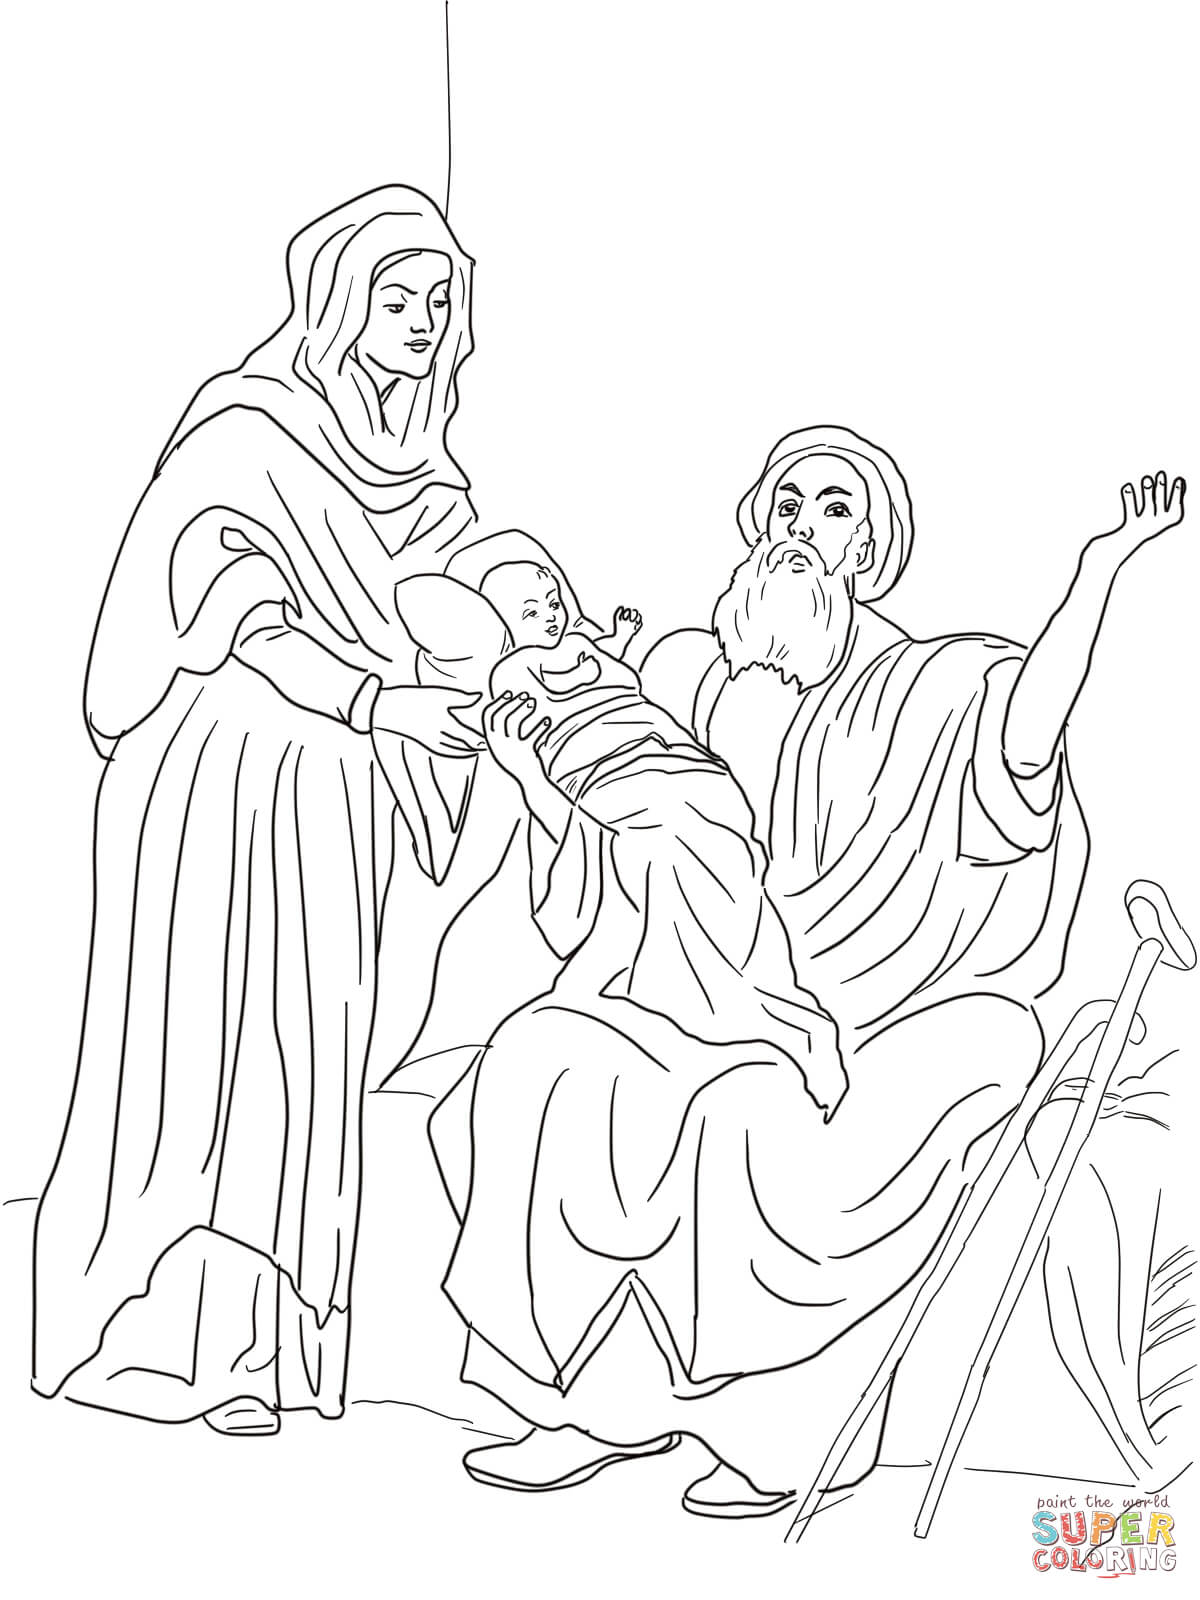 100 ideas Jesus Clears The Temple Coloring Page on kankanwzcom